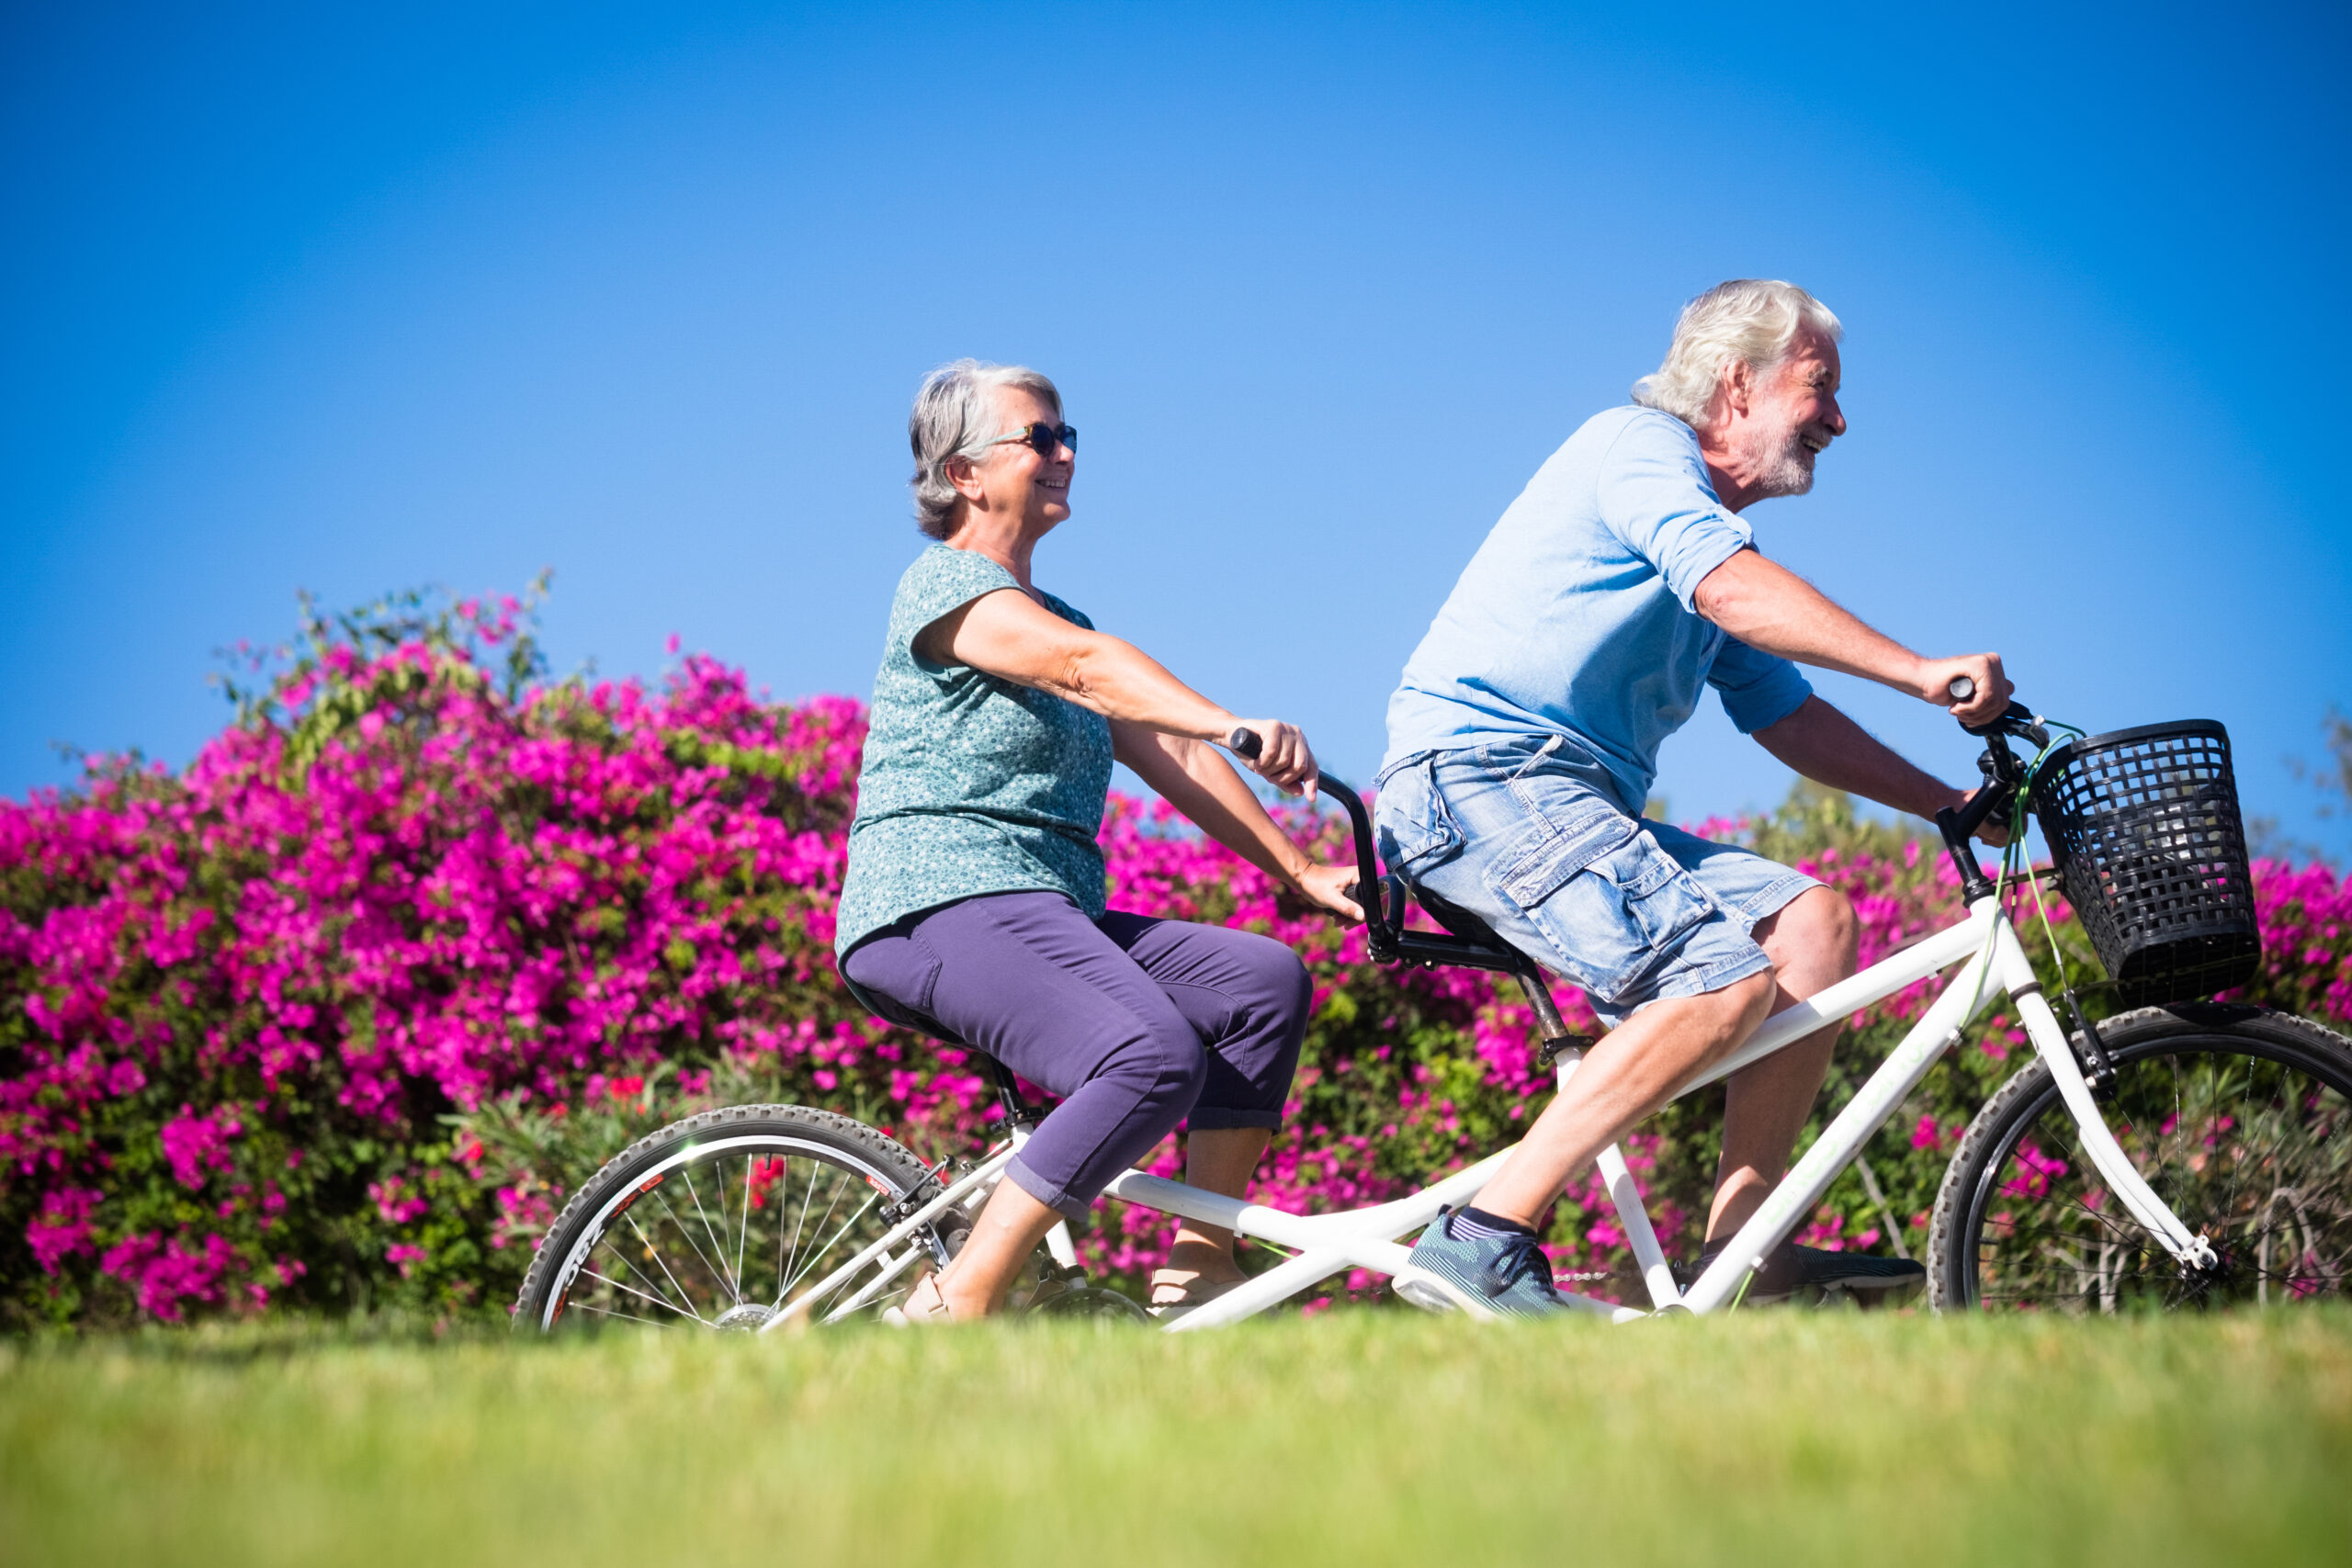 beautiful cute couple mature old woman man riding together double bike green park with pink flowers background active senior having fun with tandem